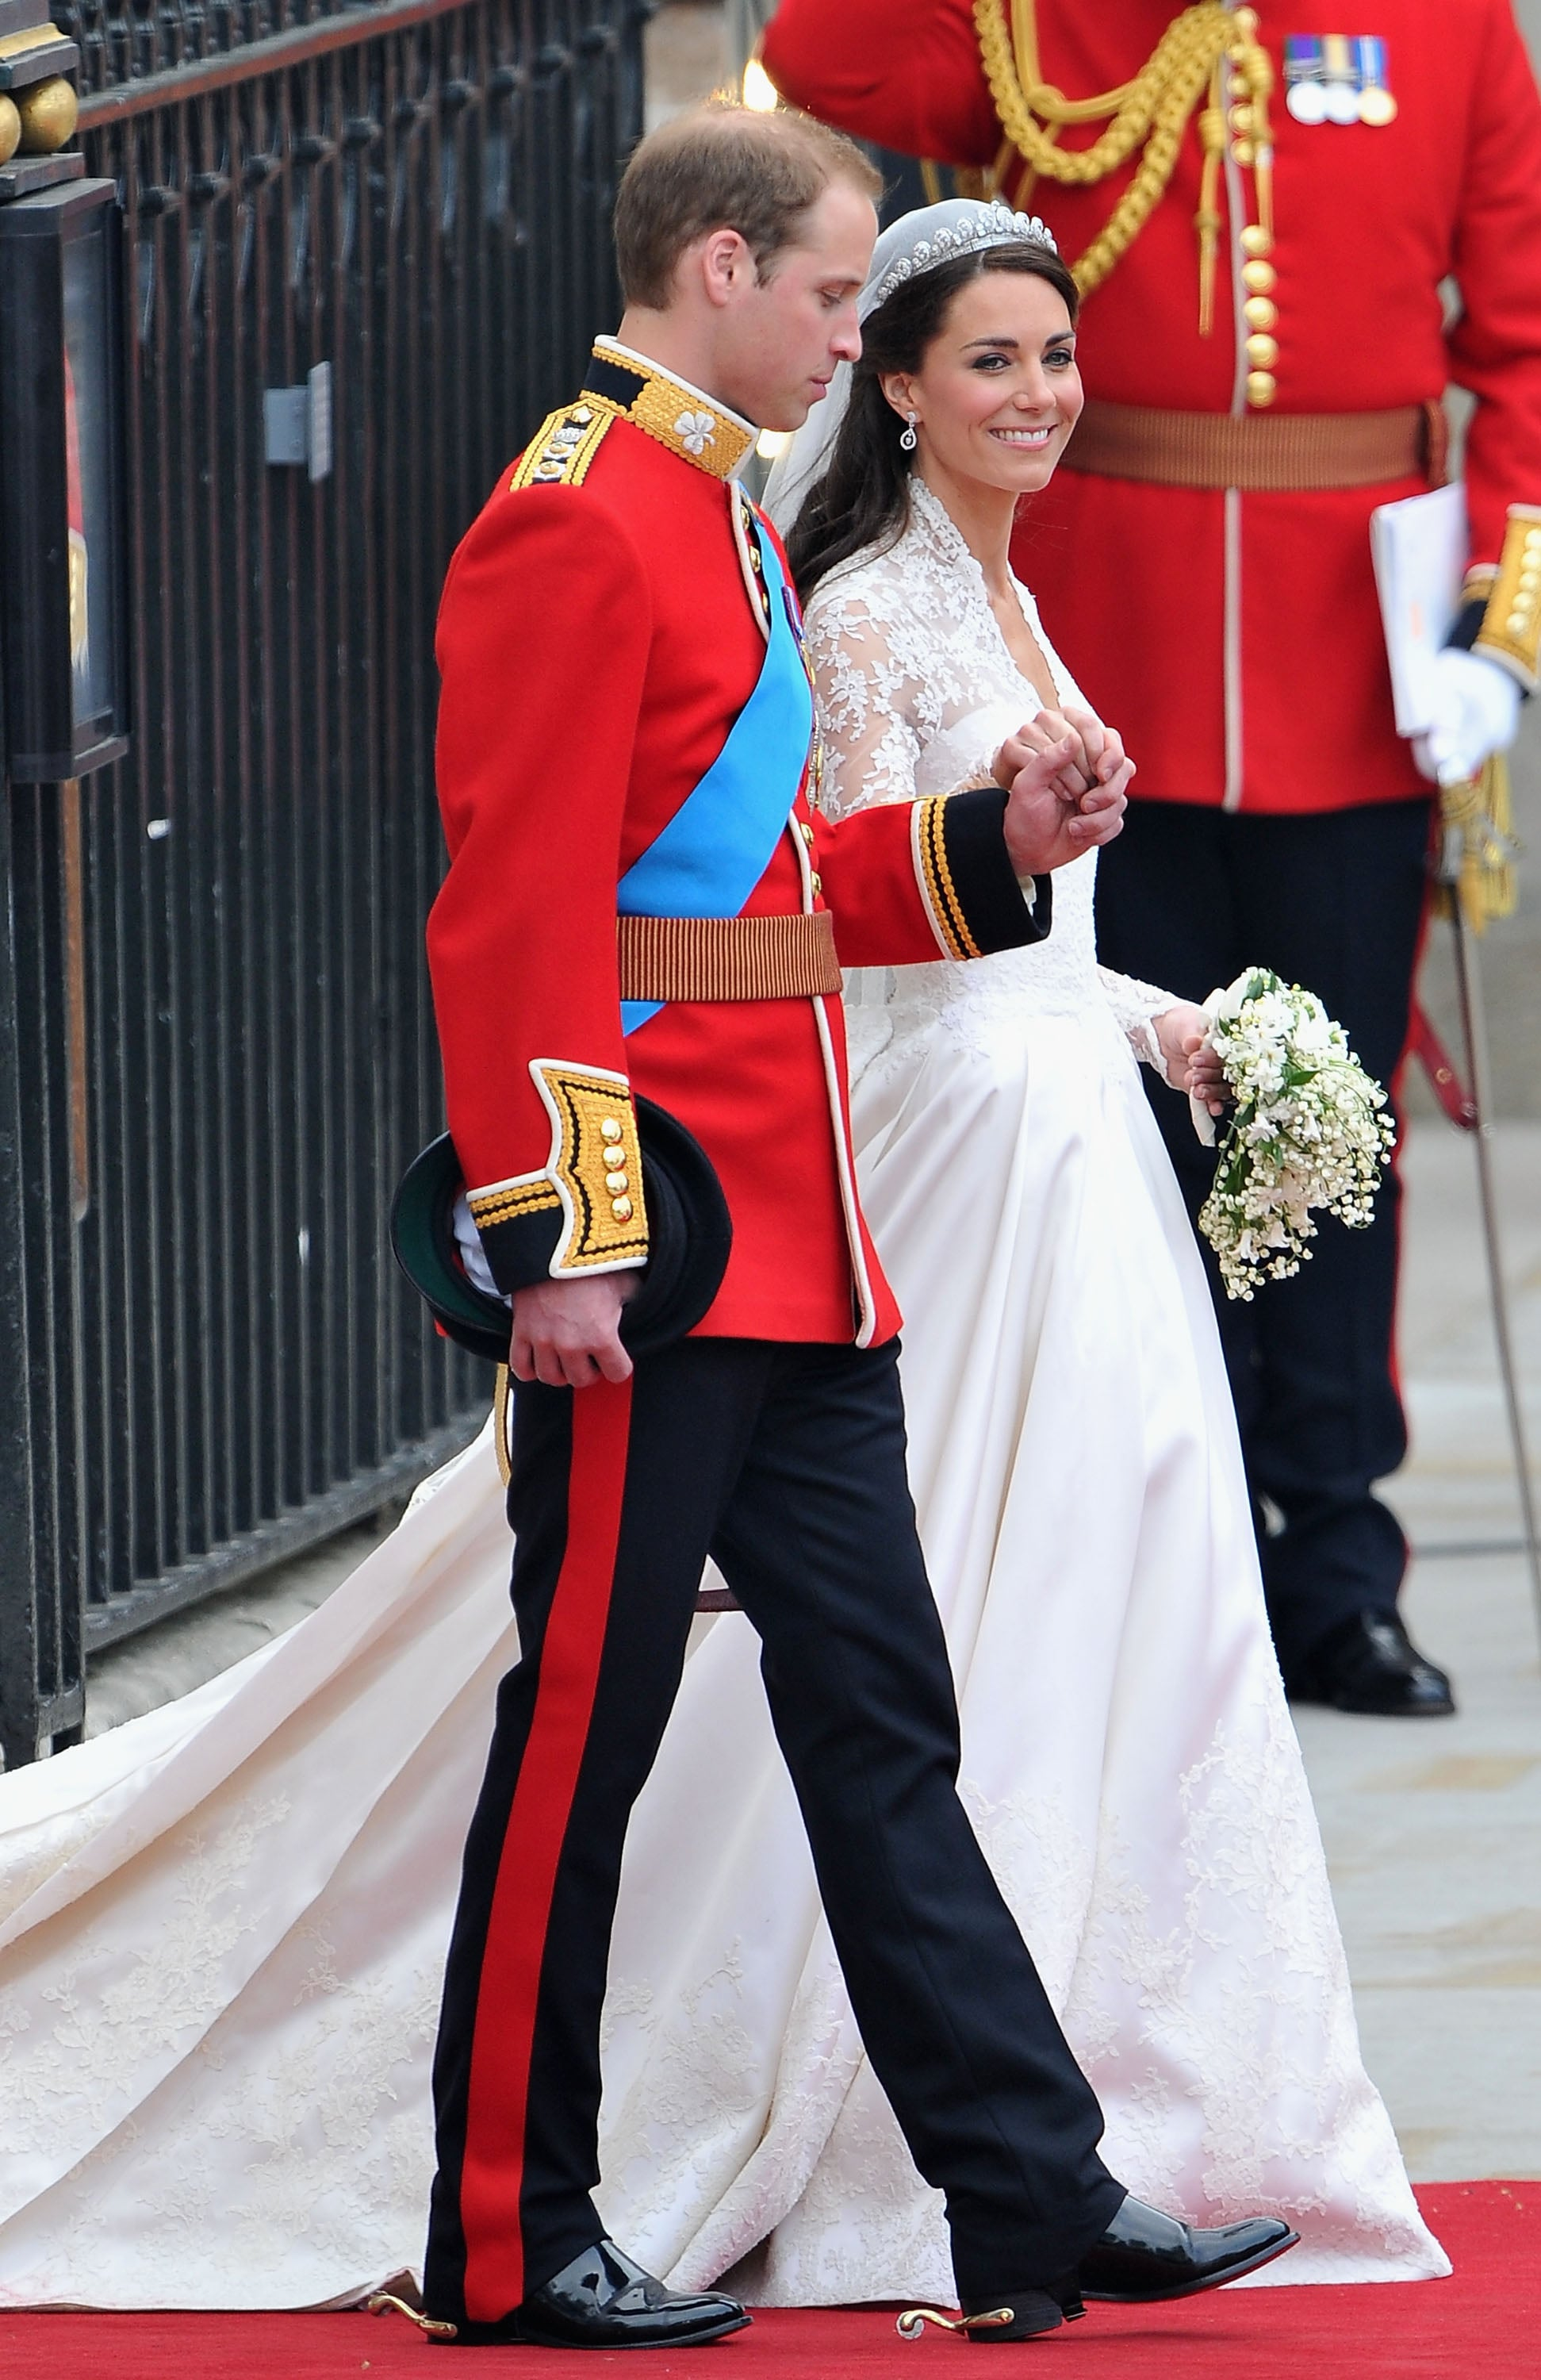 Who could forget the royal wedding? Kate married William in a massive ceremony at Westminster Abbey on April 29, 2011.